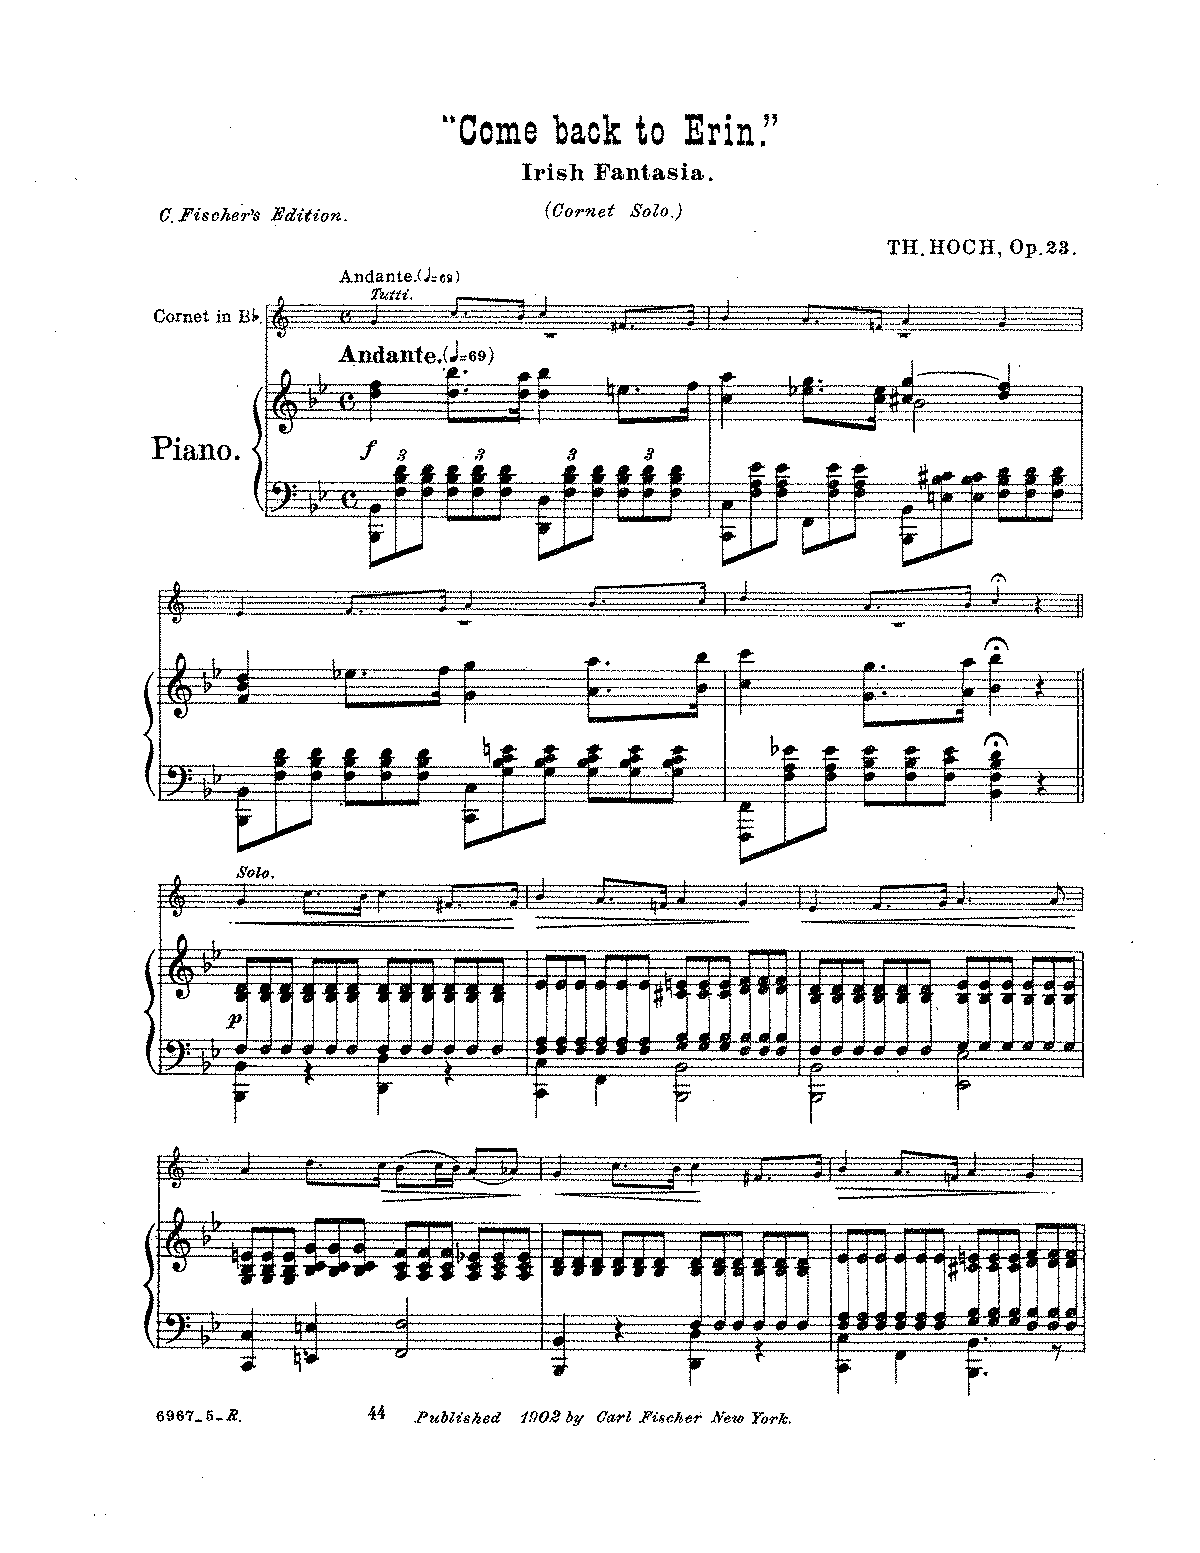 PMLP379368-Hoch 1902 Come Back to Erin Irish Fantasia.pdf